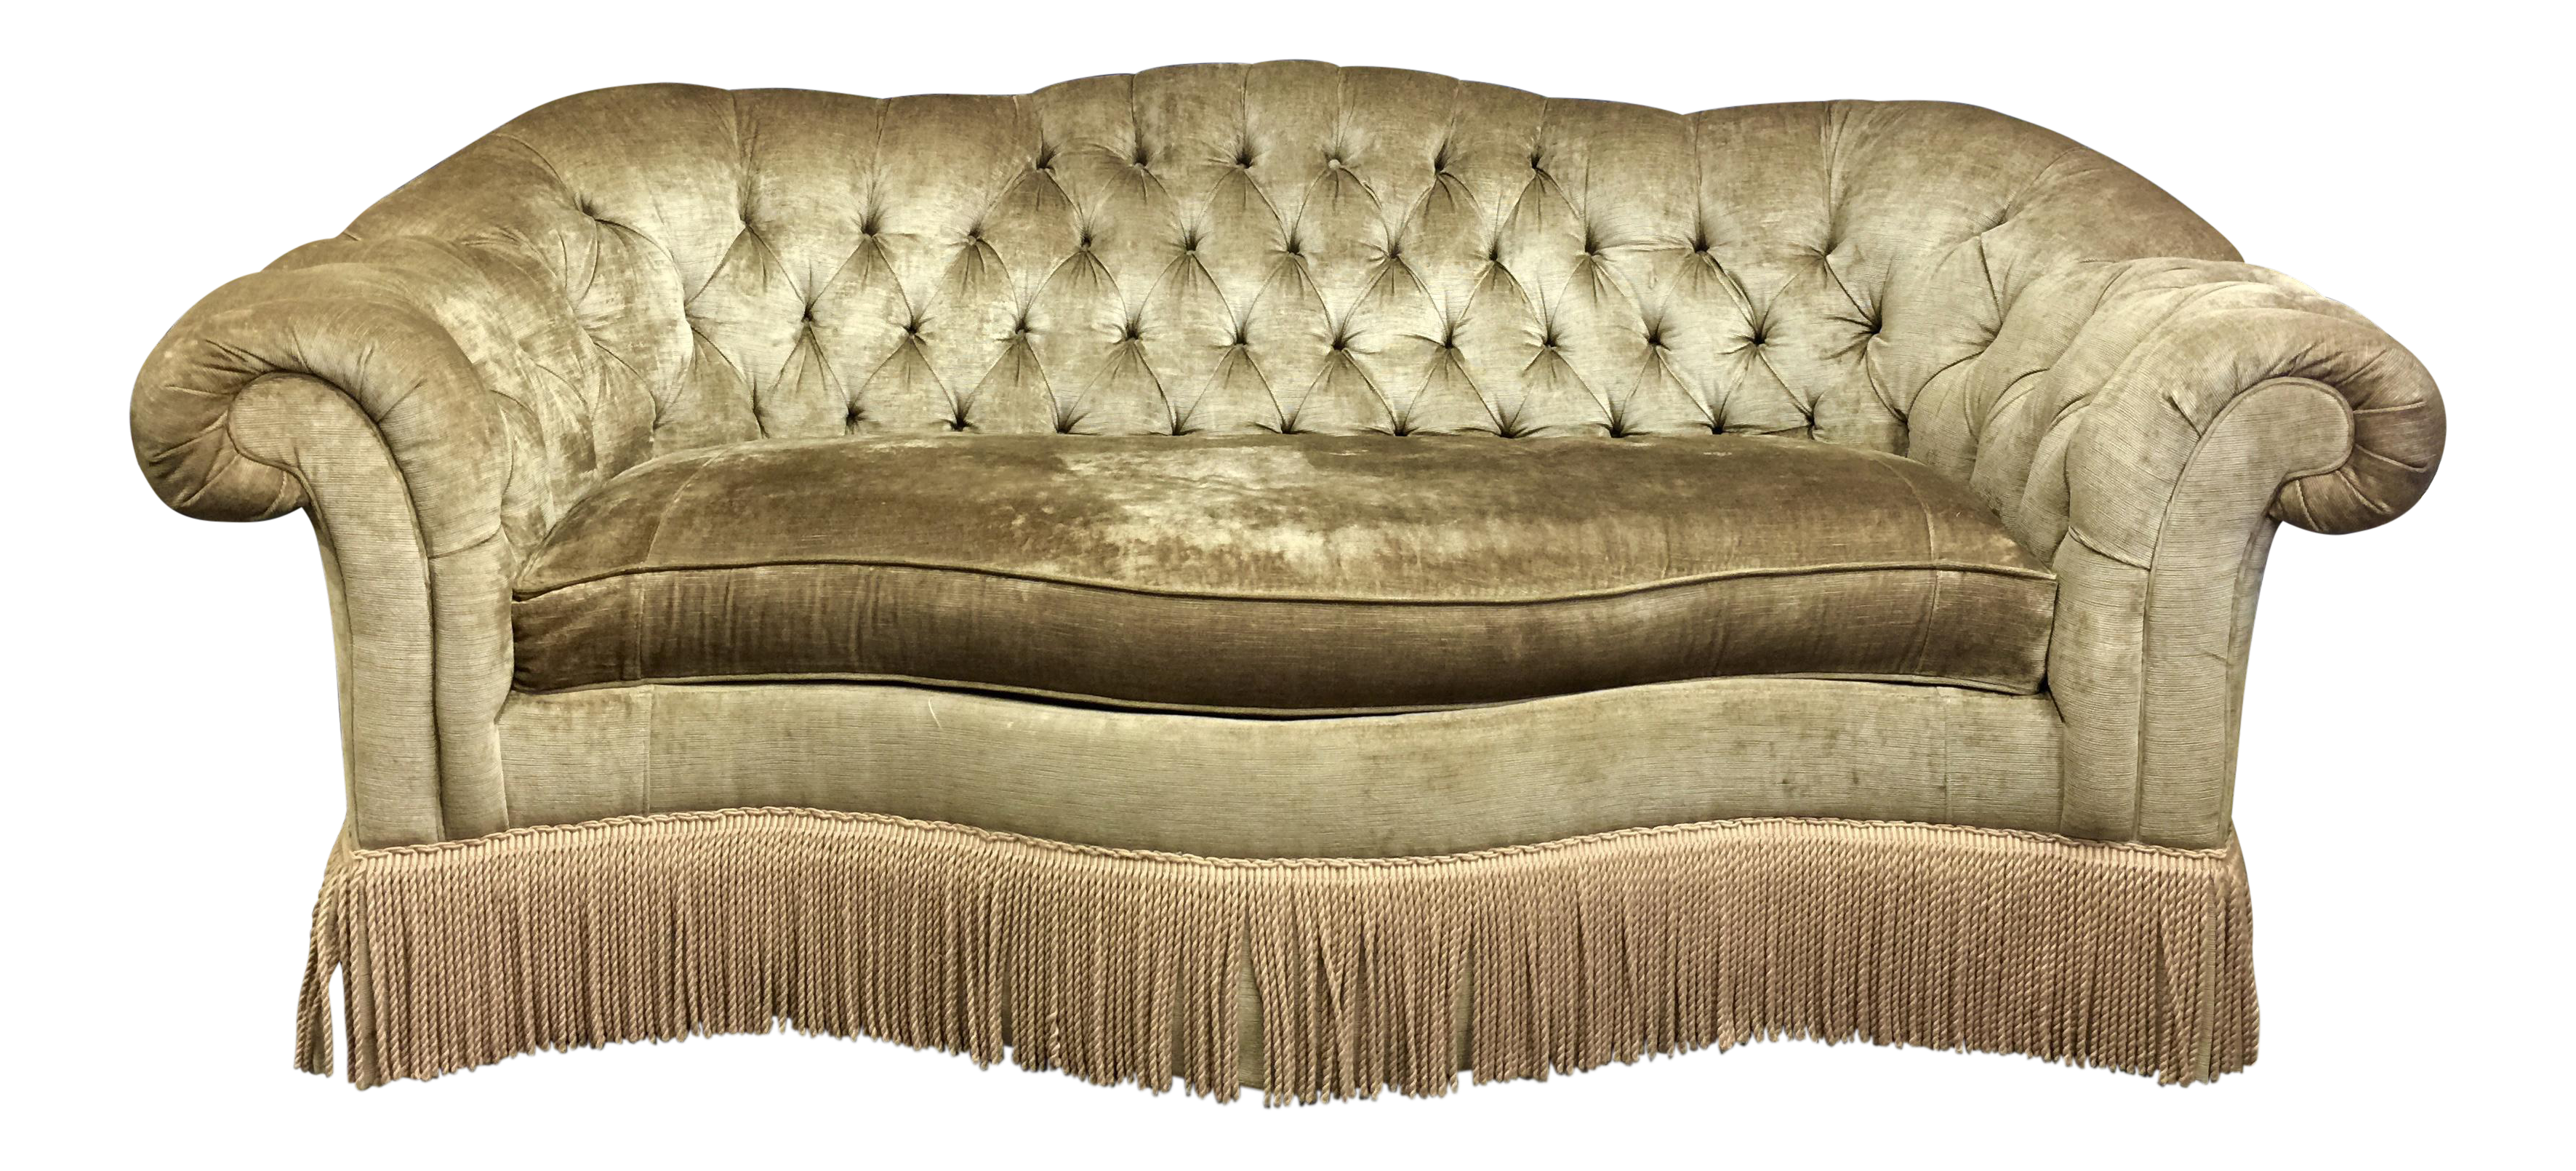 Chesterfield Sofa Chicago Warm Chesterfield Sofa Chicago